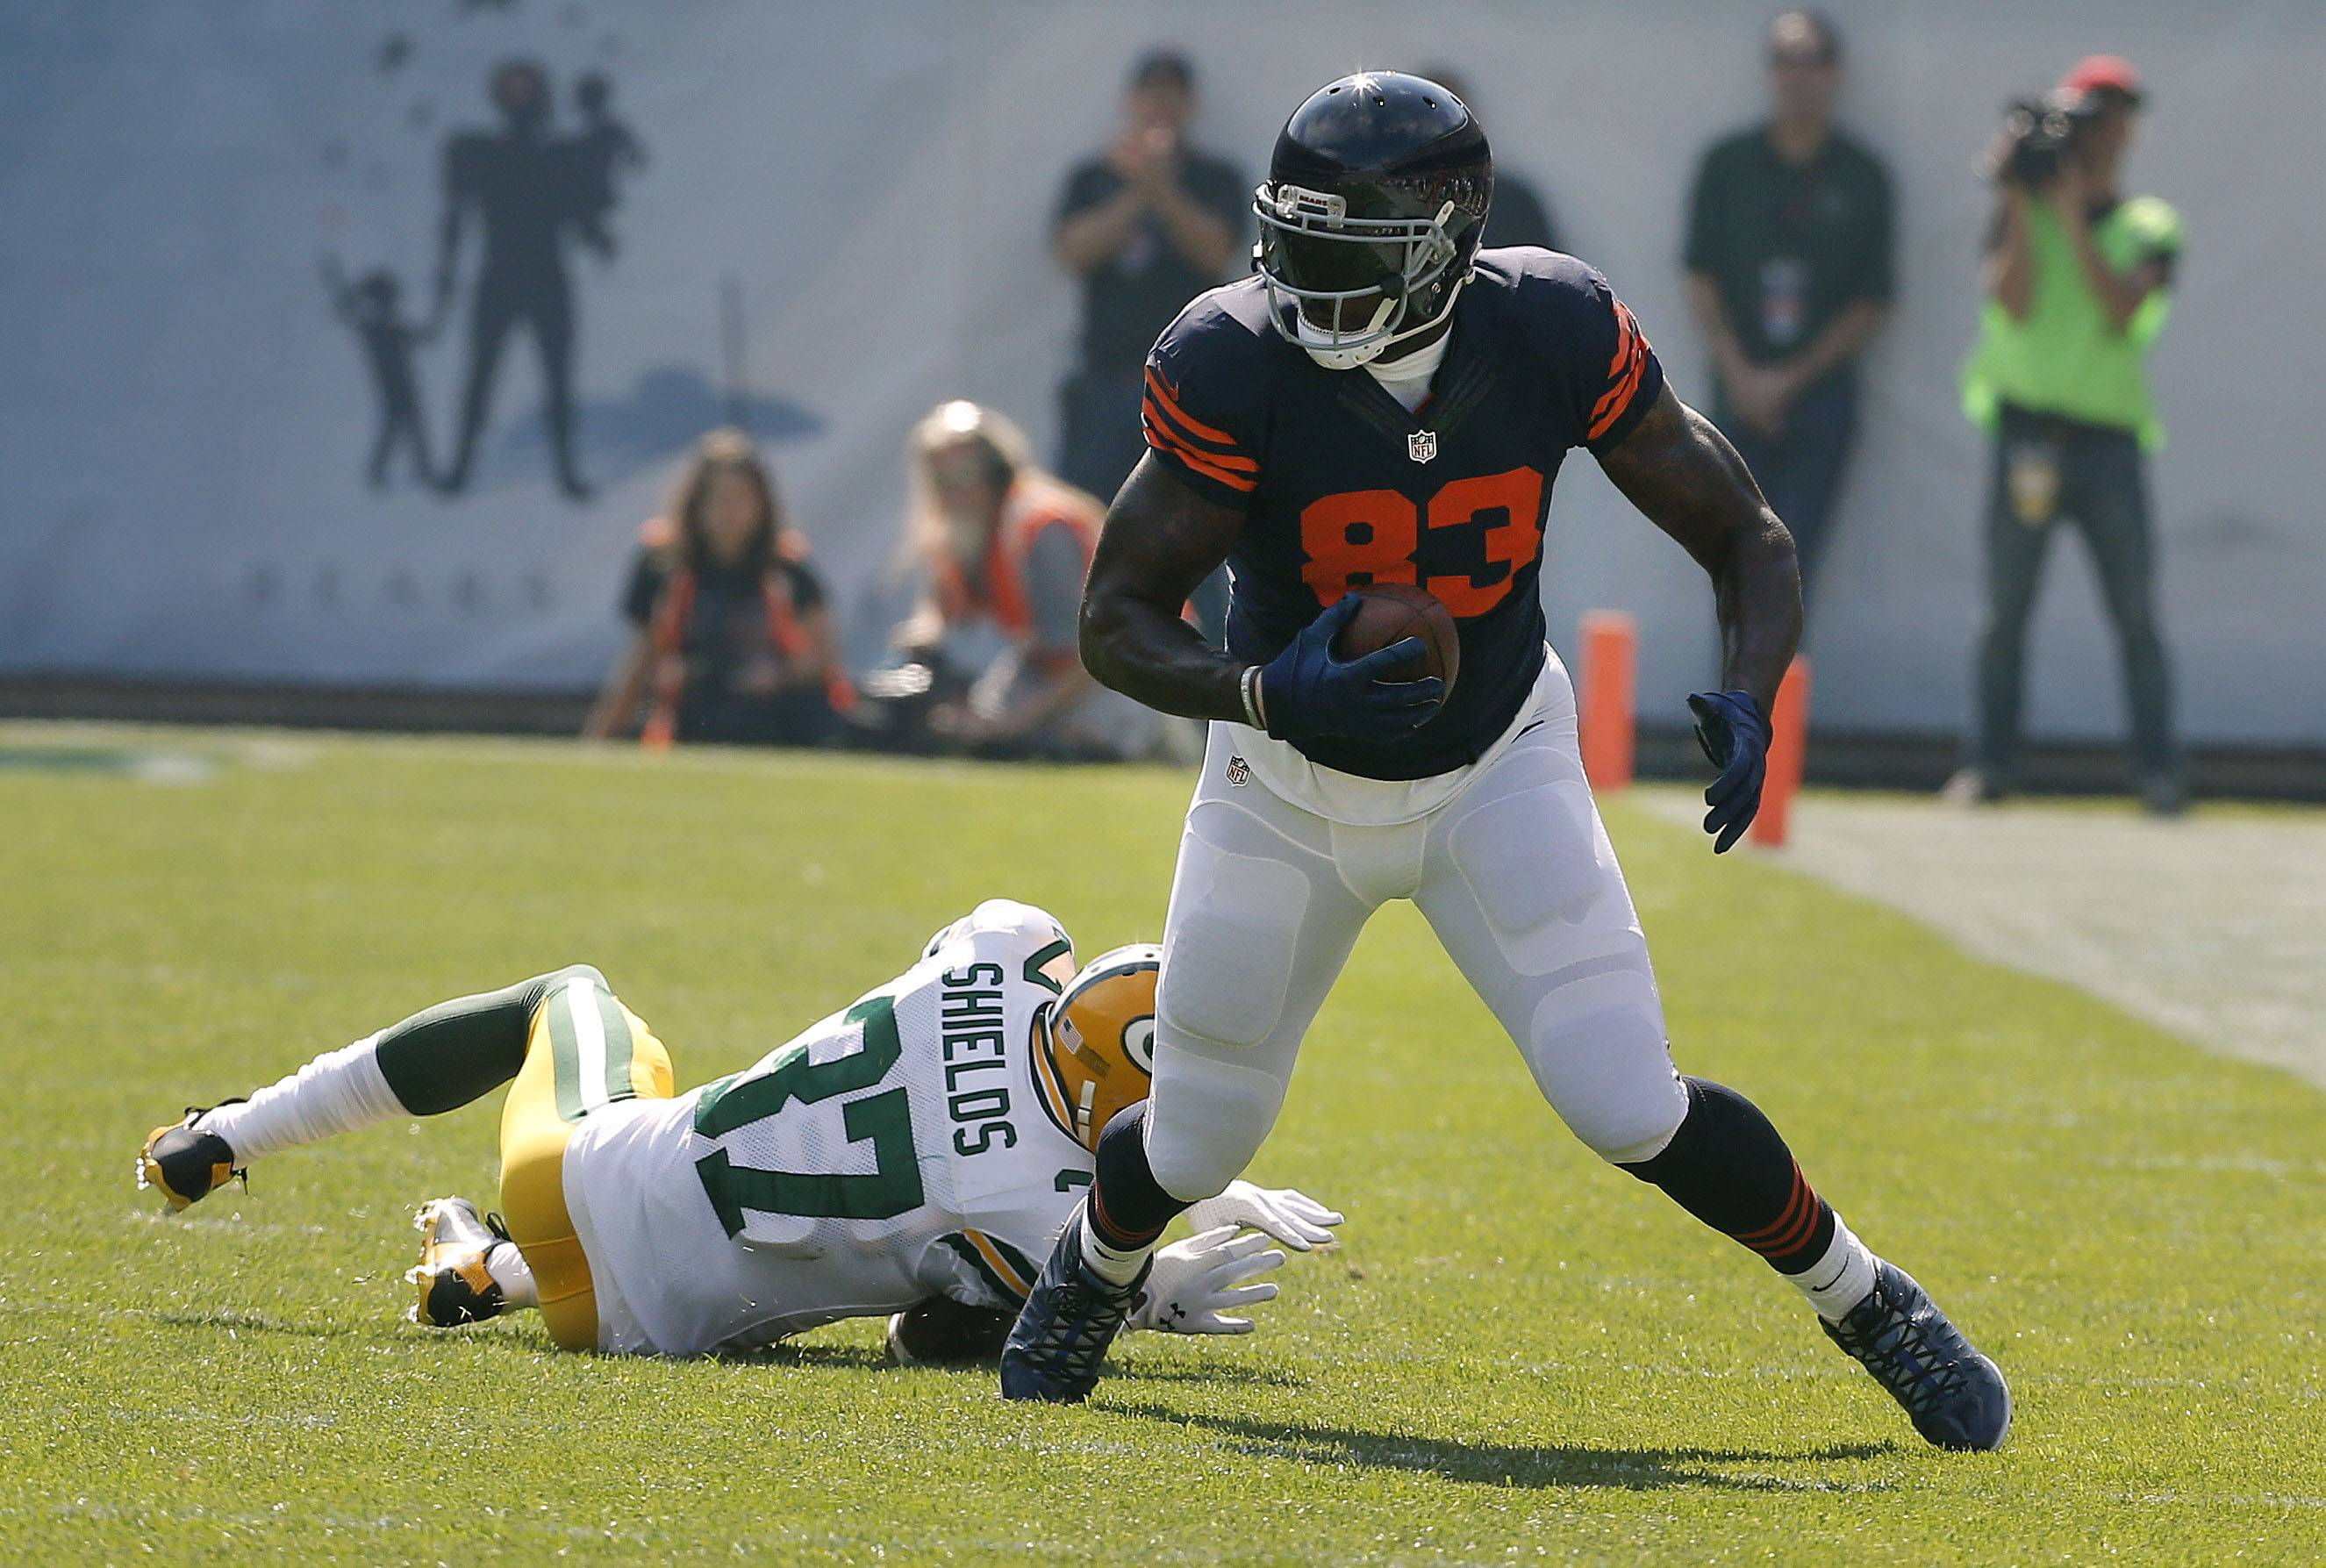 Bears tight end Martellus Bennett, who finally is getting some recognition, caught 9 passes for 134 yards in Sunday's loss to the Packers.